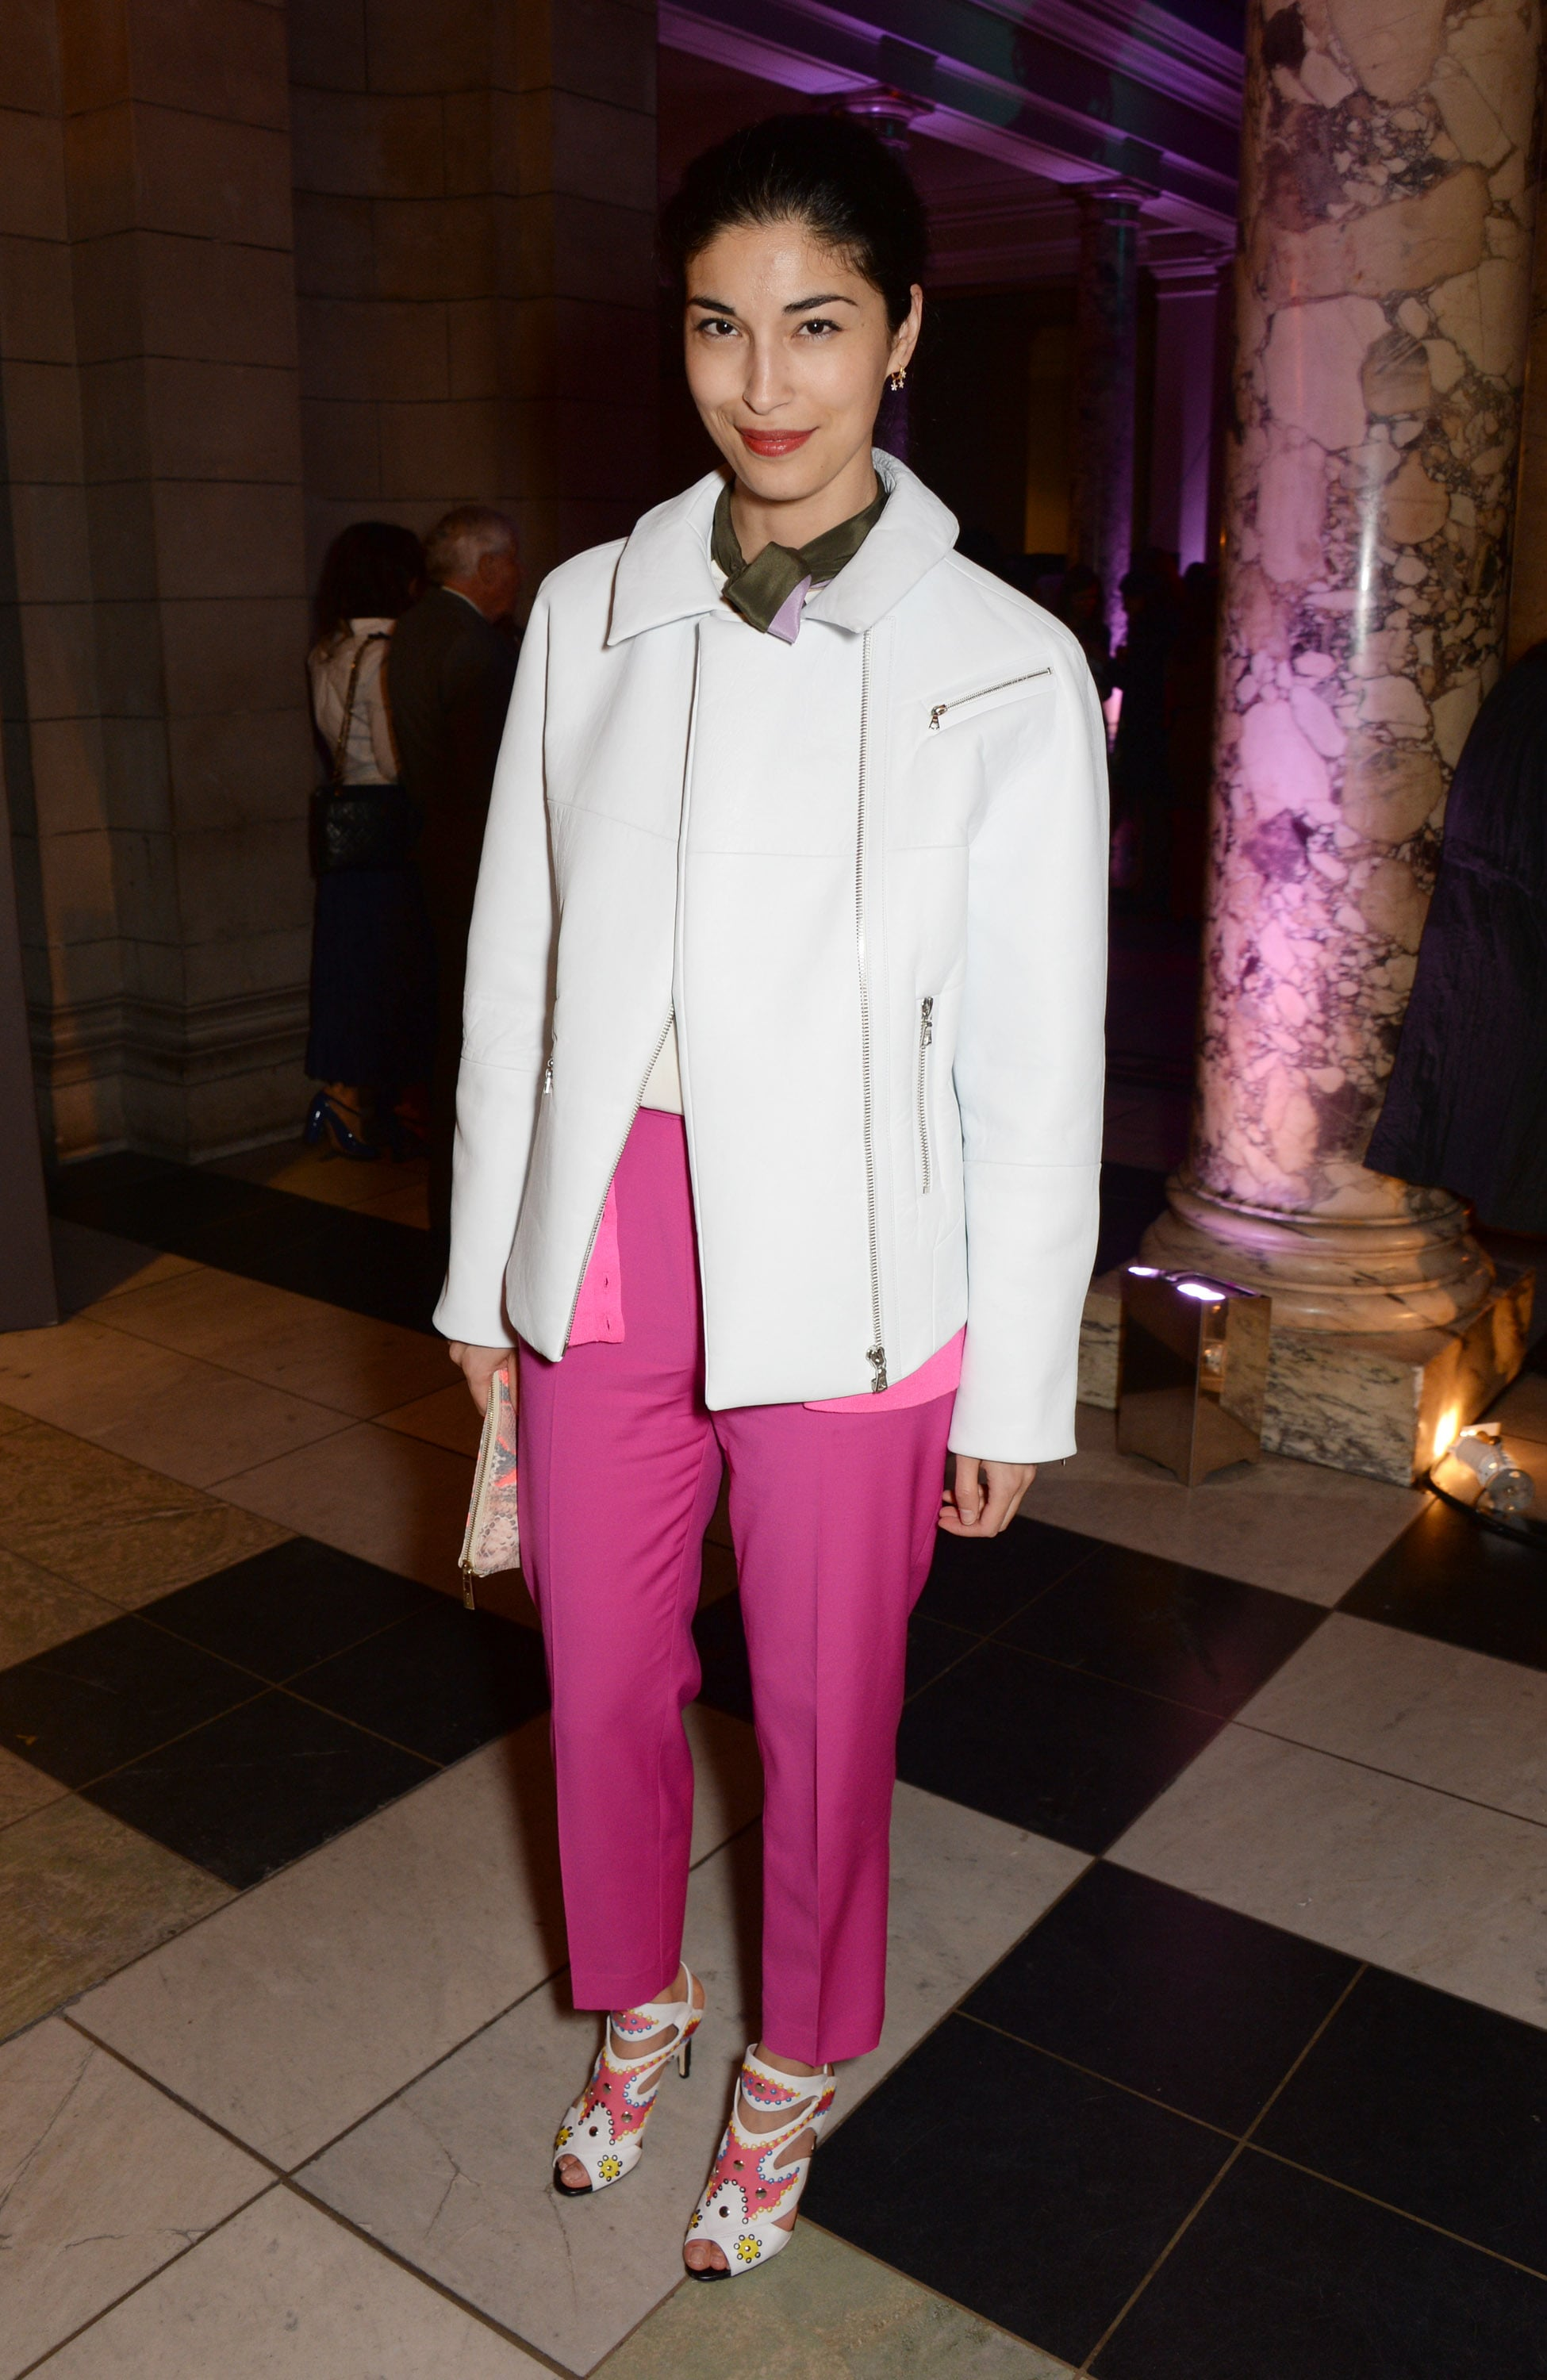 Caroline Issa at the Glamour of Italian Fashion Preview Event